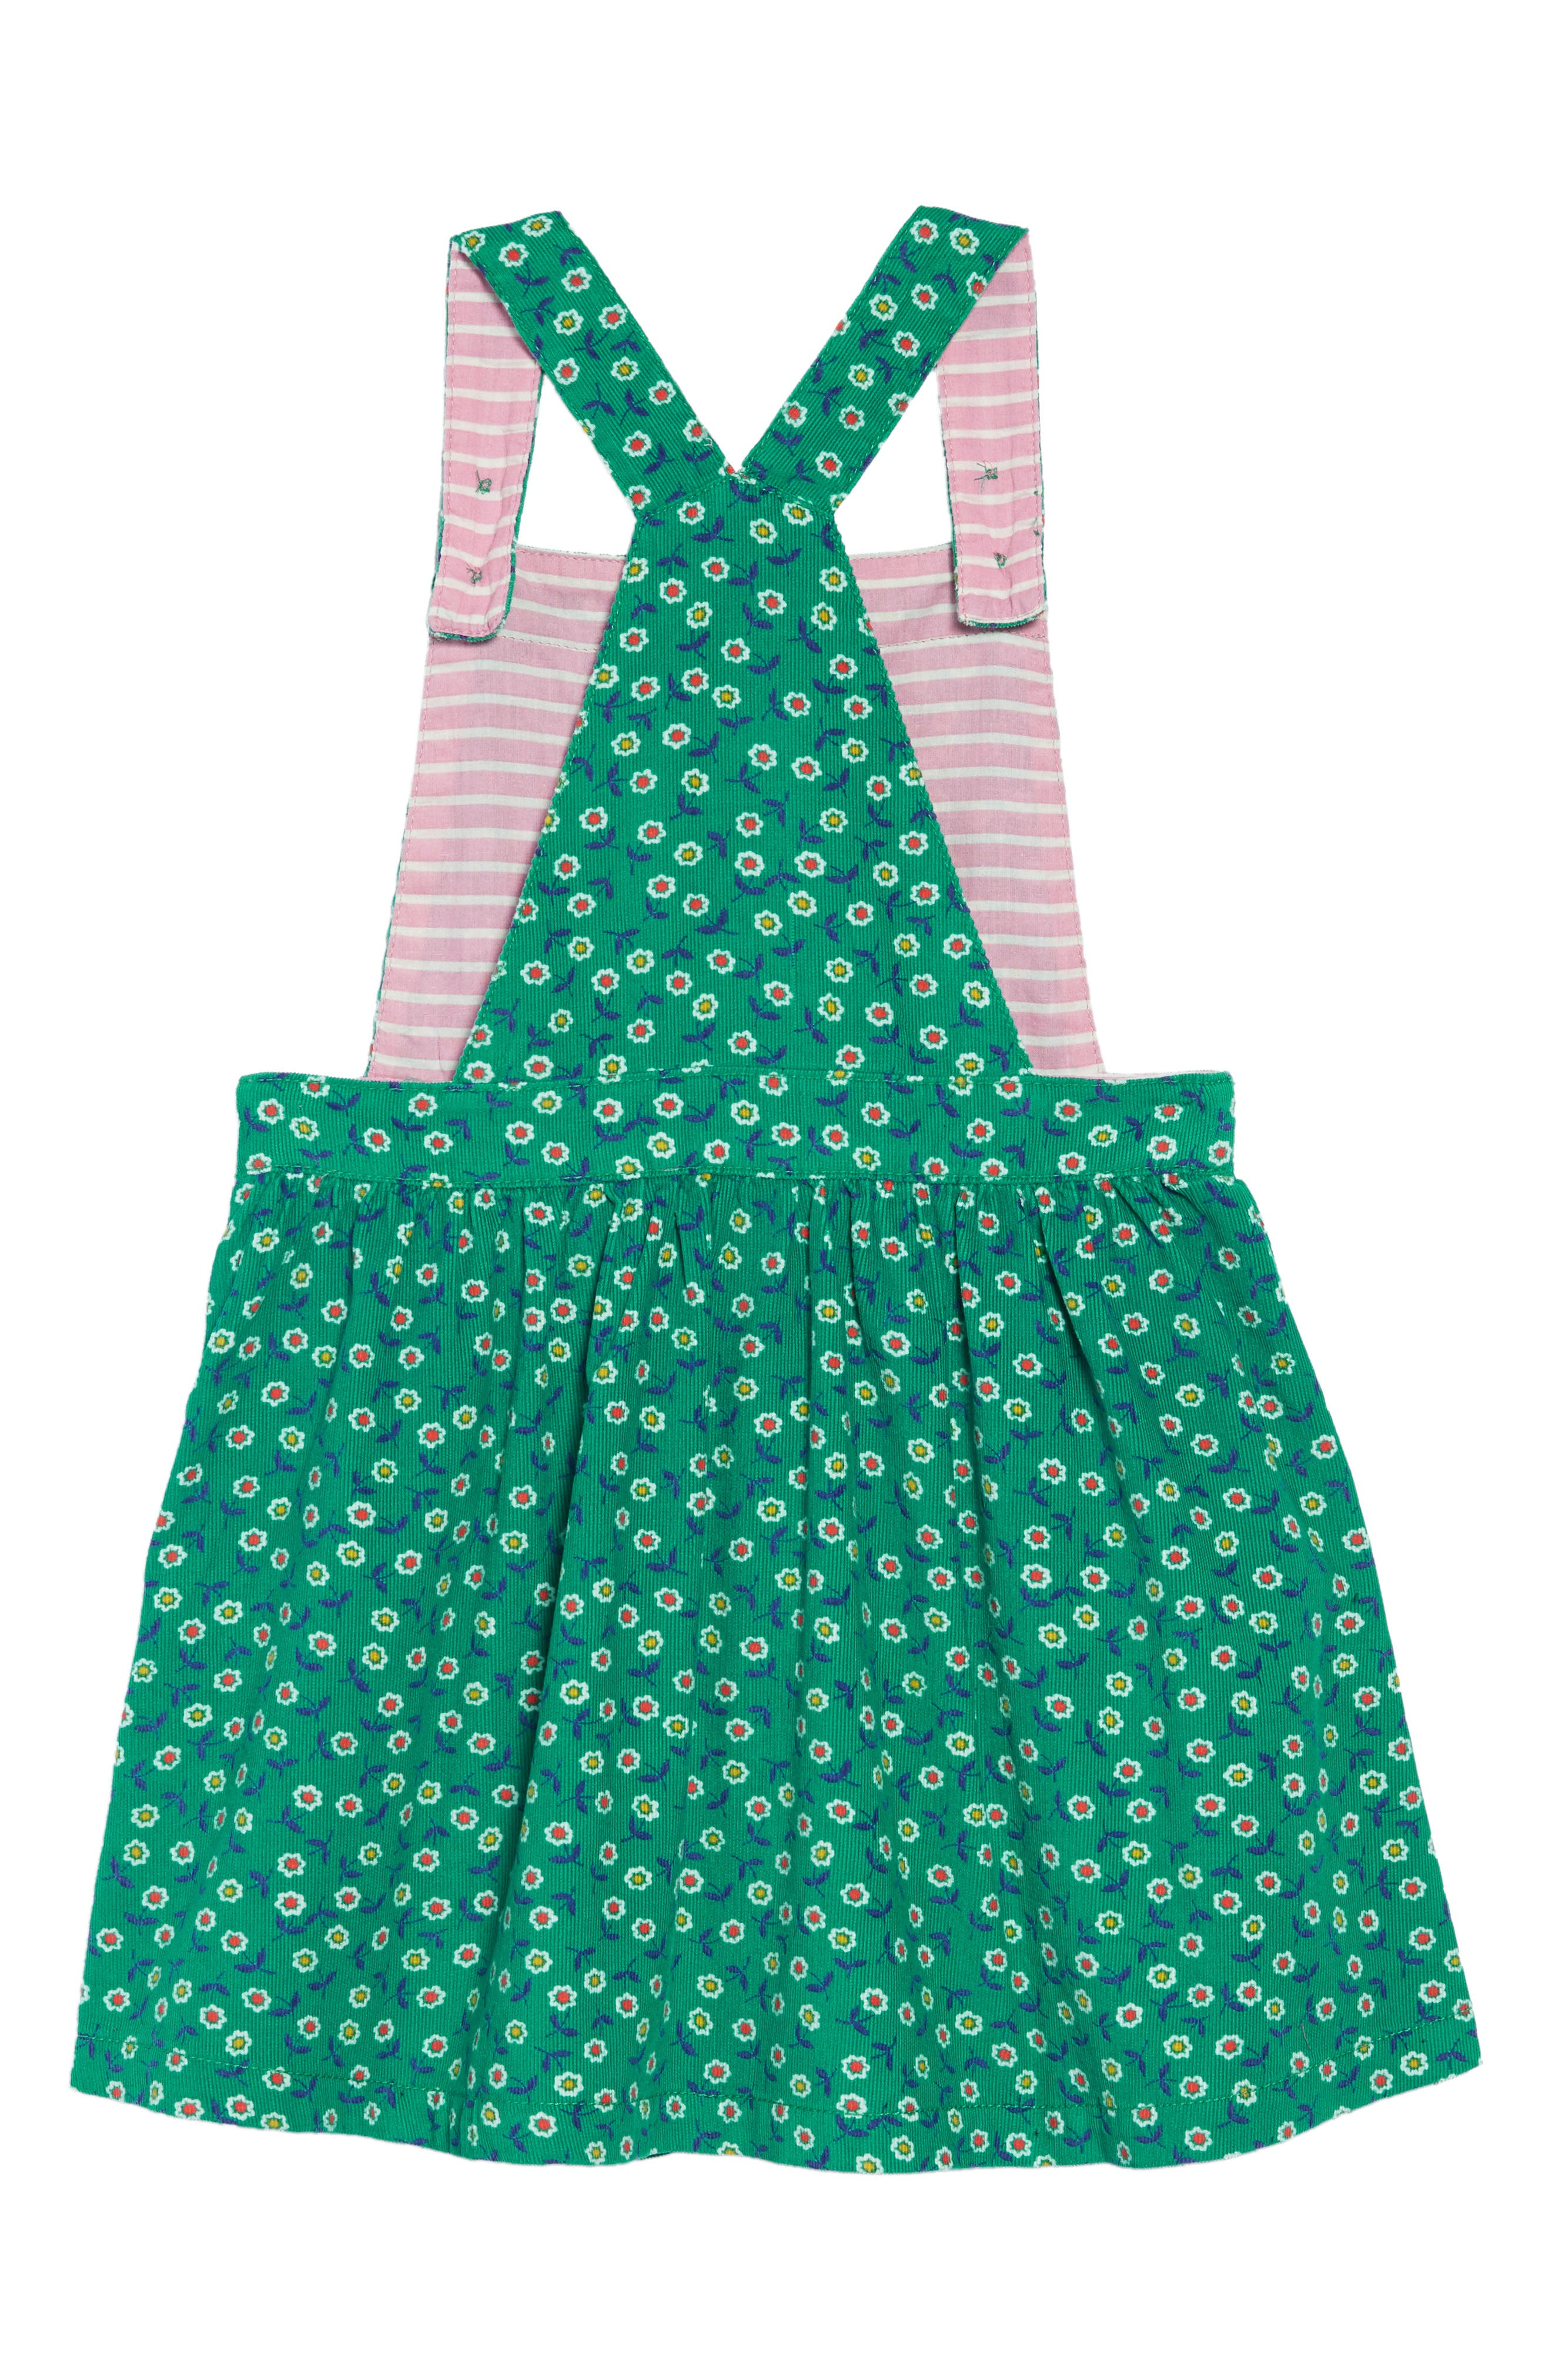 MINI BODEN,                             Dungaree Overall Dress,                             Alternate thumbnail 2, color,                             315